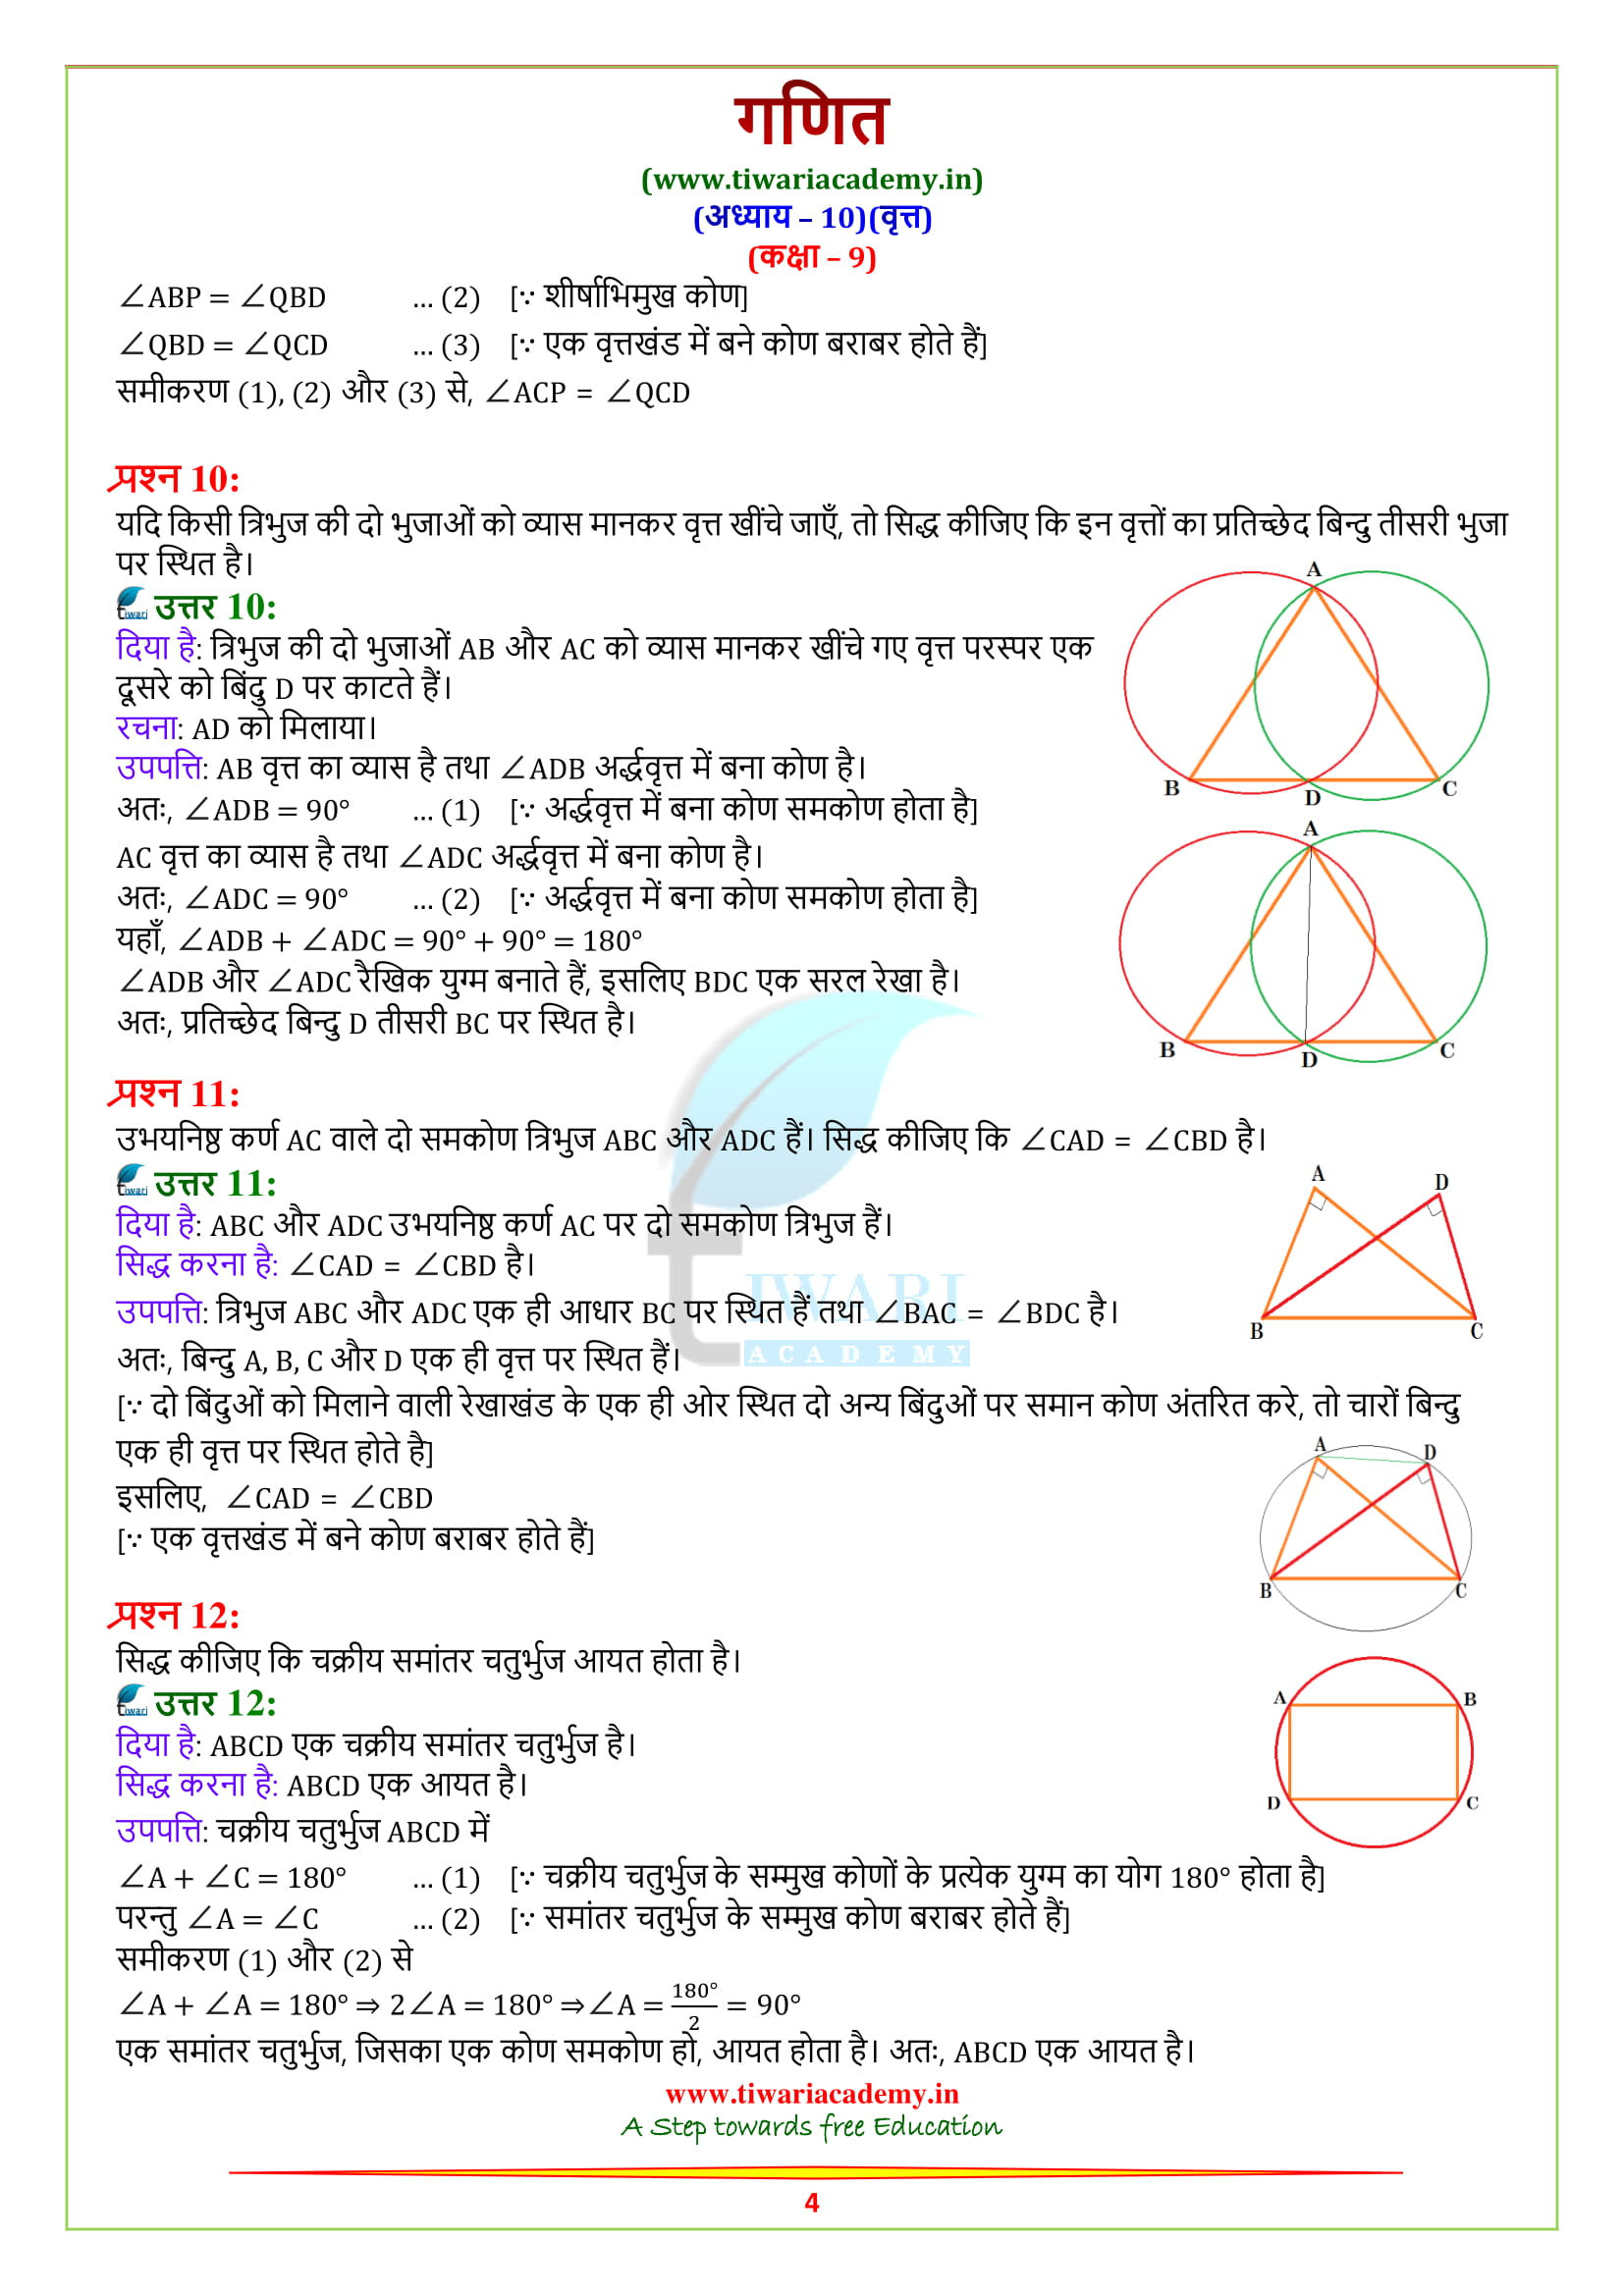 9 Maths Exercise 10.5 solutions in hindi medium